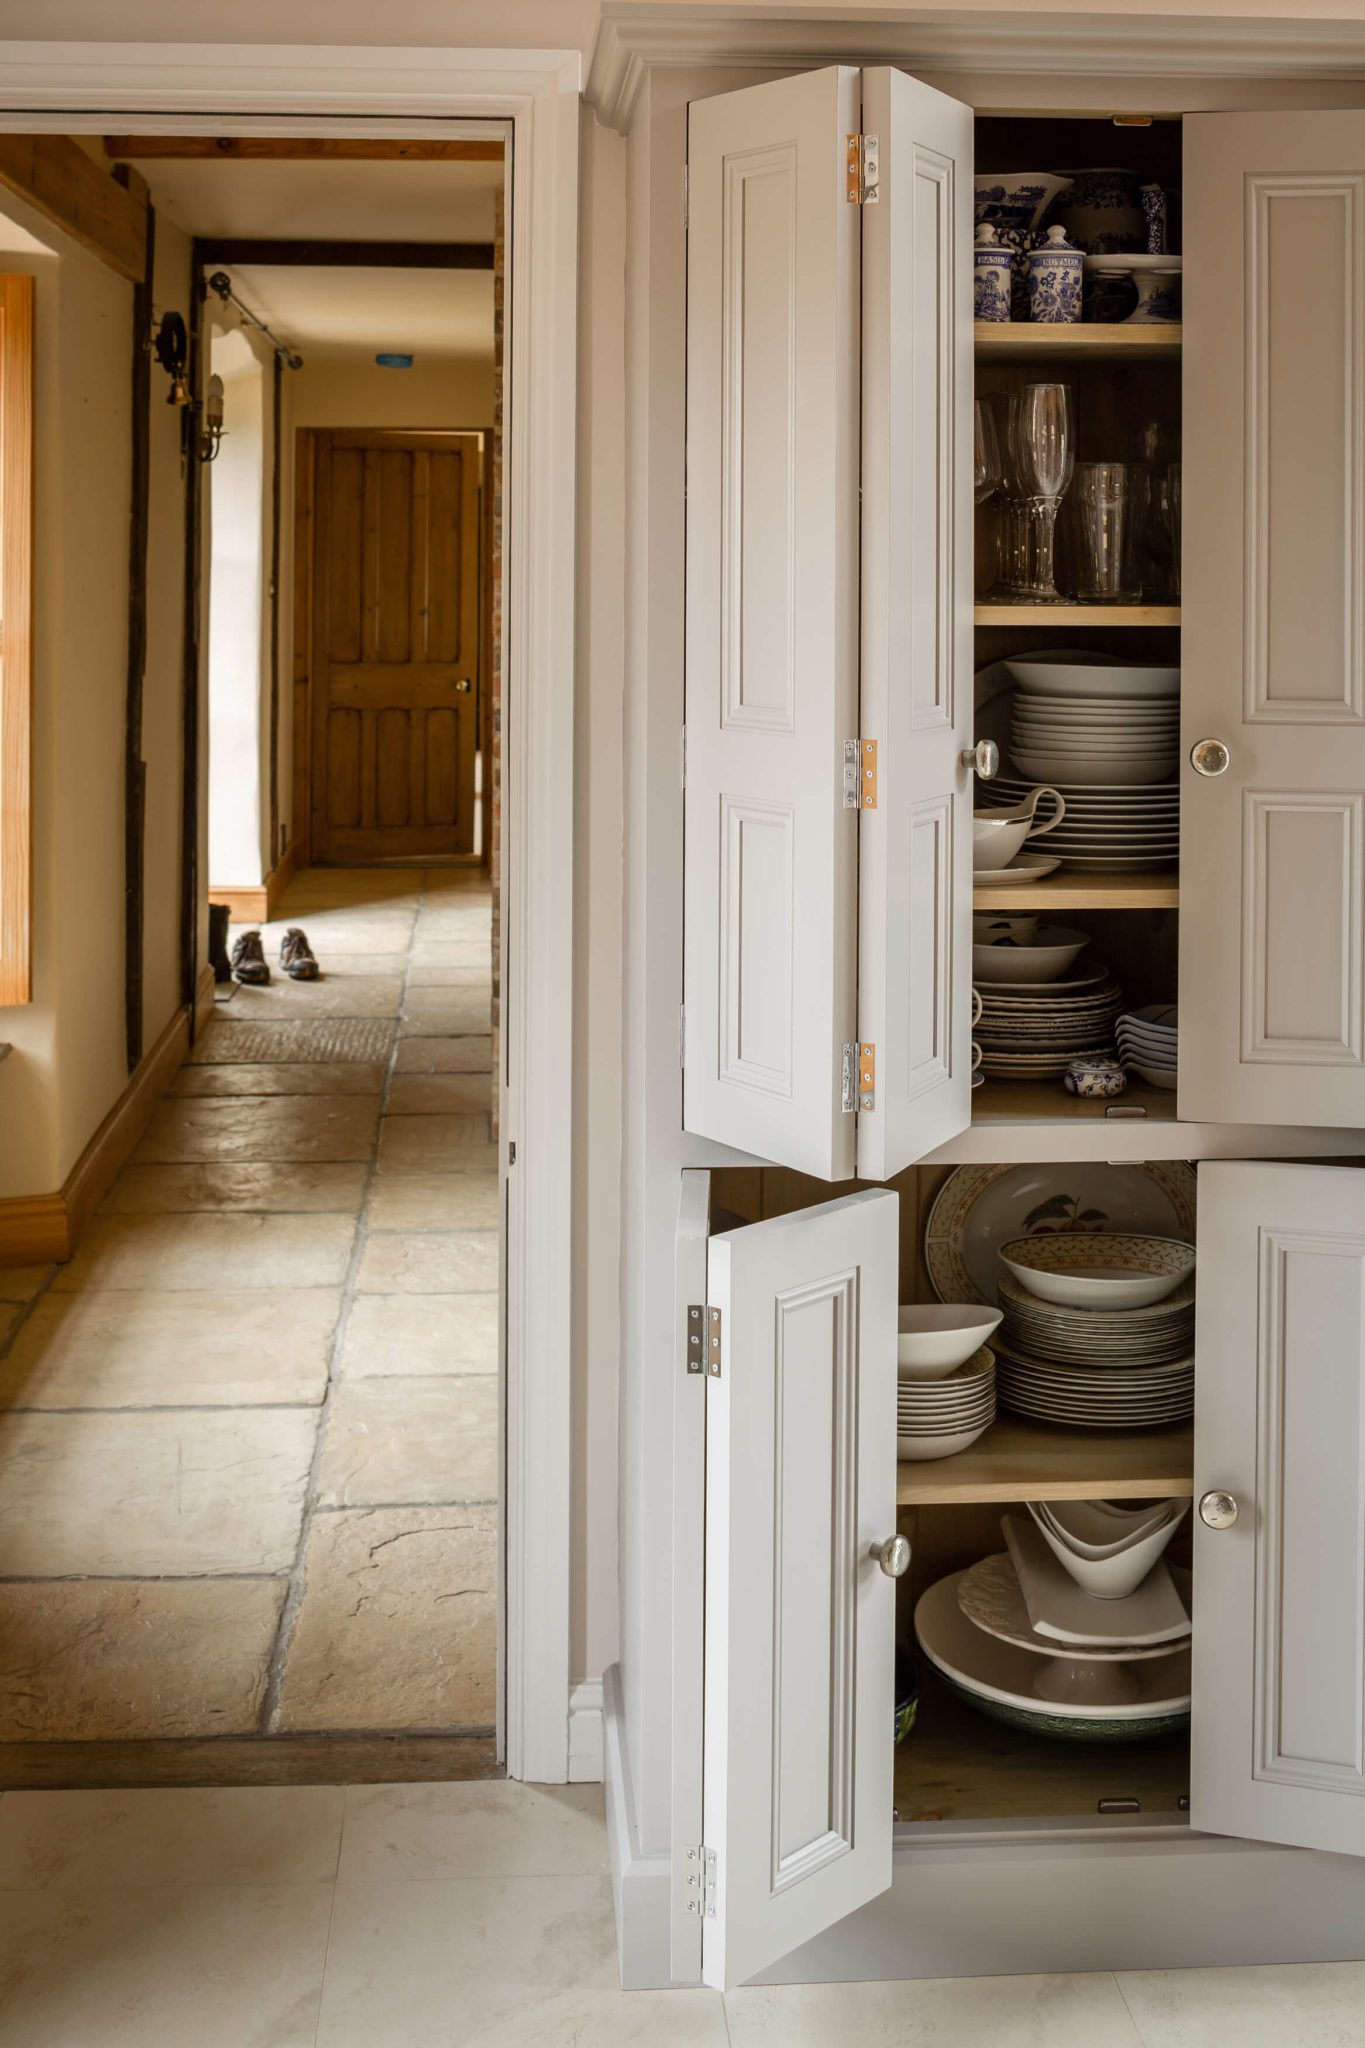 Bespoke Larder Kitchen - Hill Farm Furniture